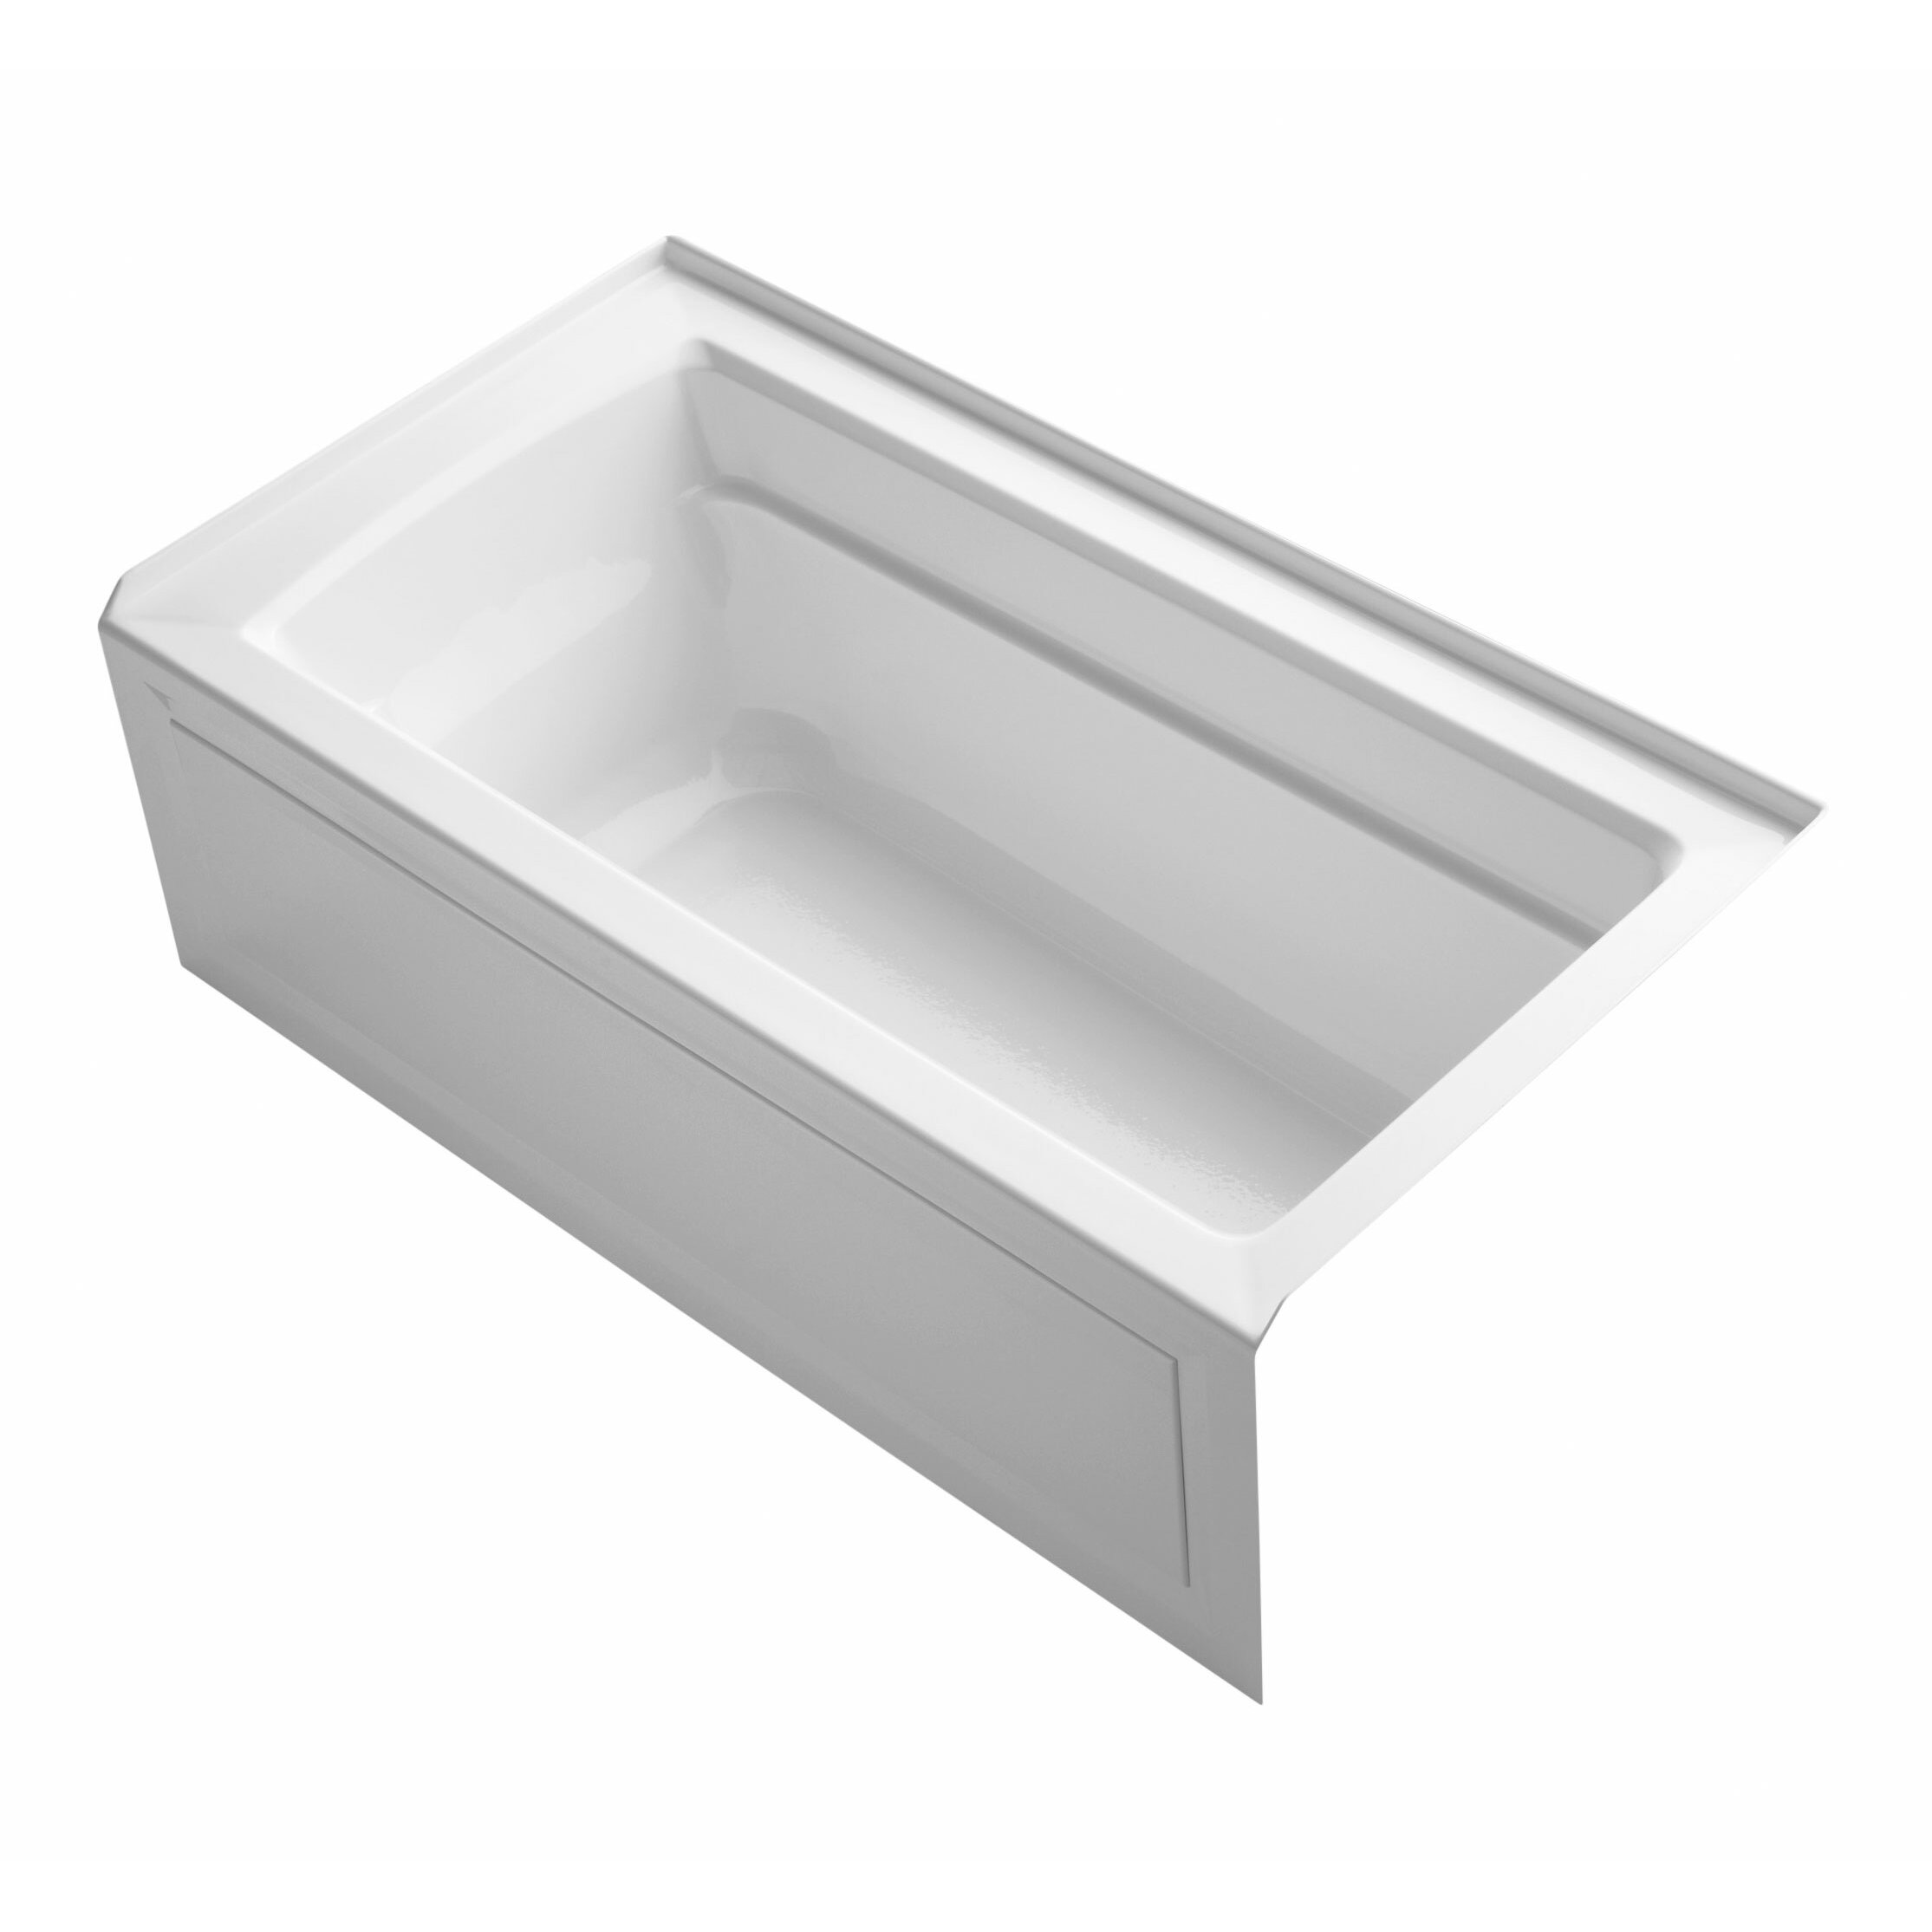 Modern Tubs Whirlpools AllModern - Free standing tub dimensions